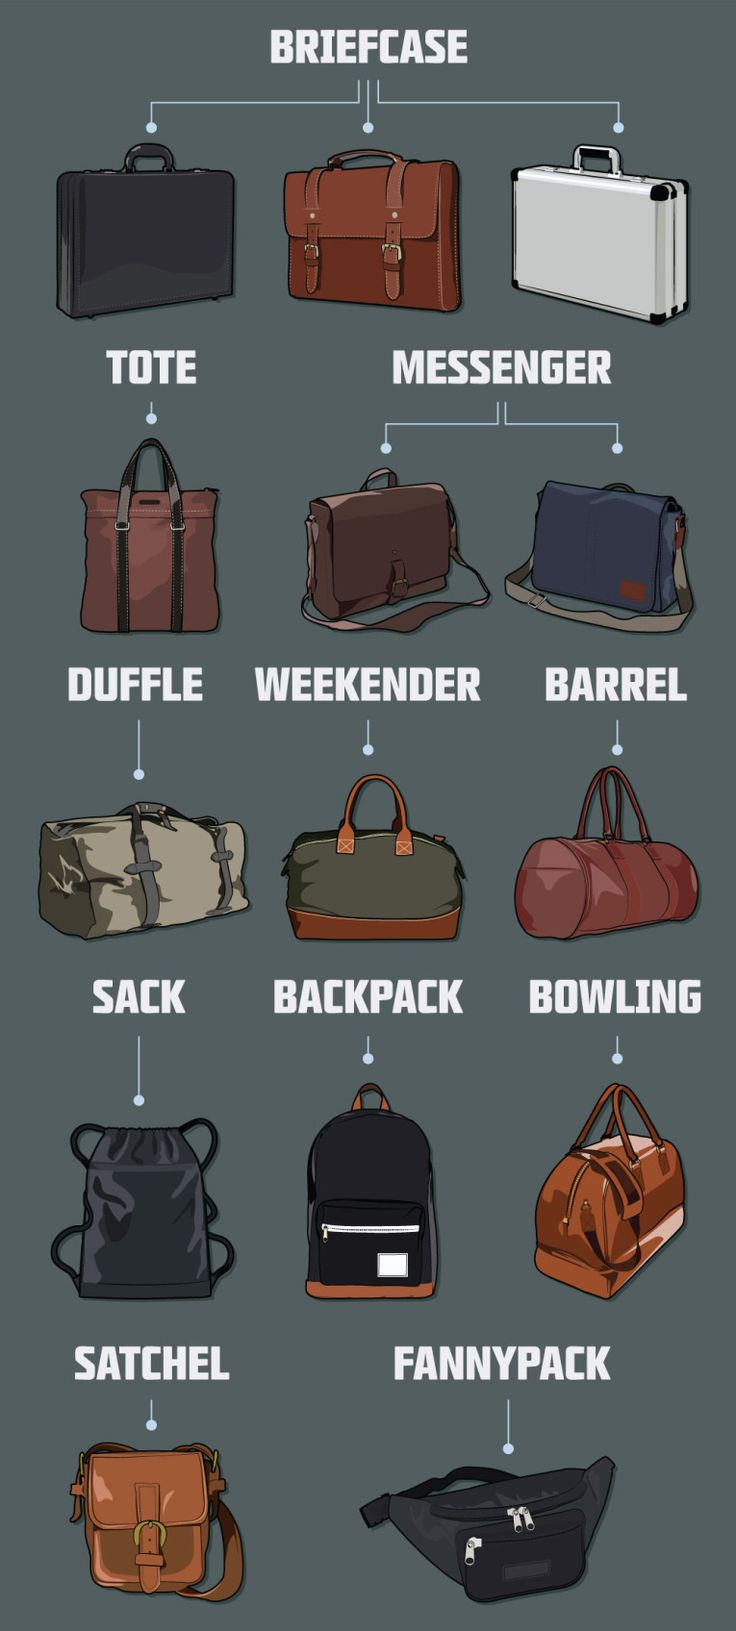 men's office hand bags visual glossary  http://fashioninfographics.com/page/2